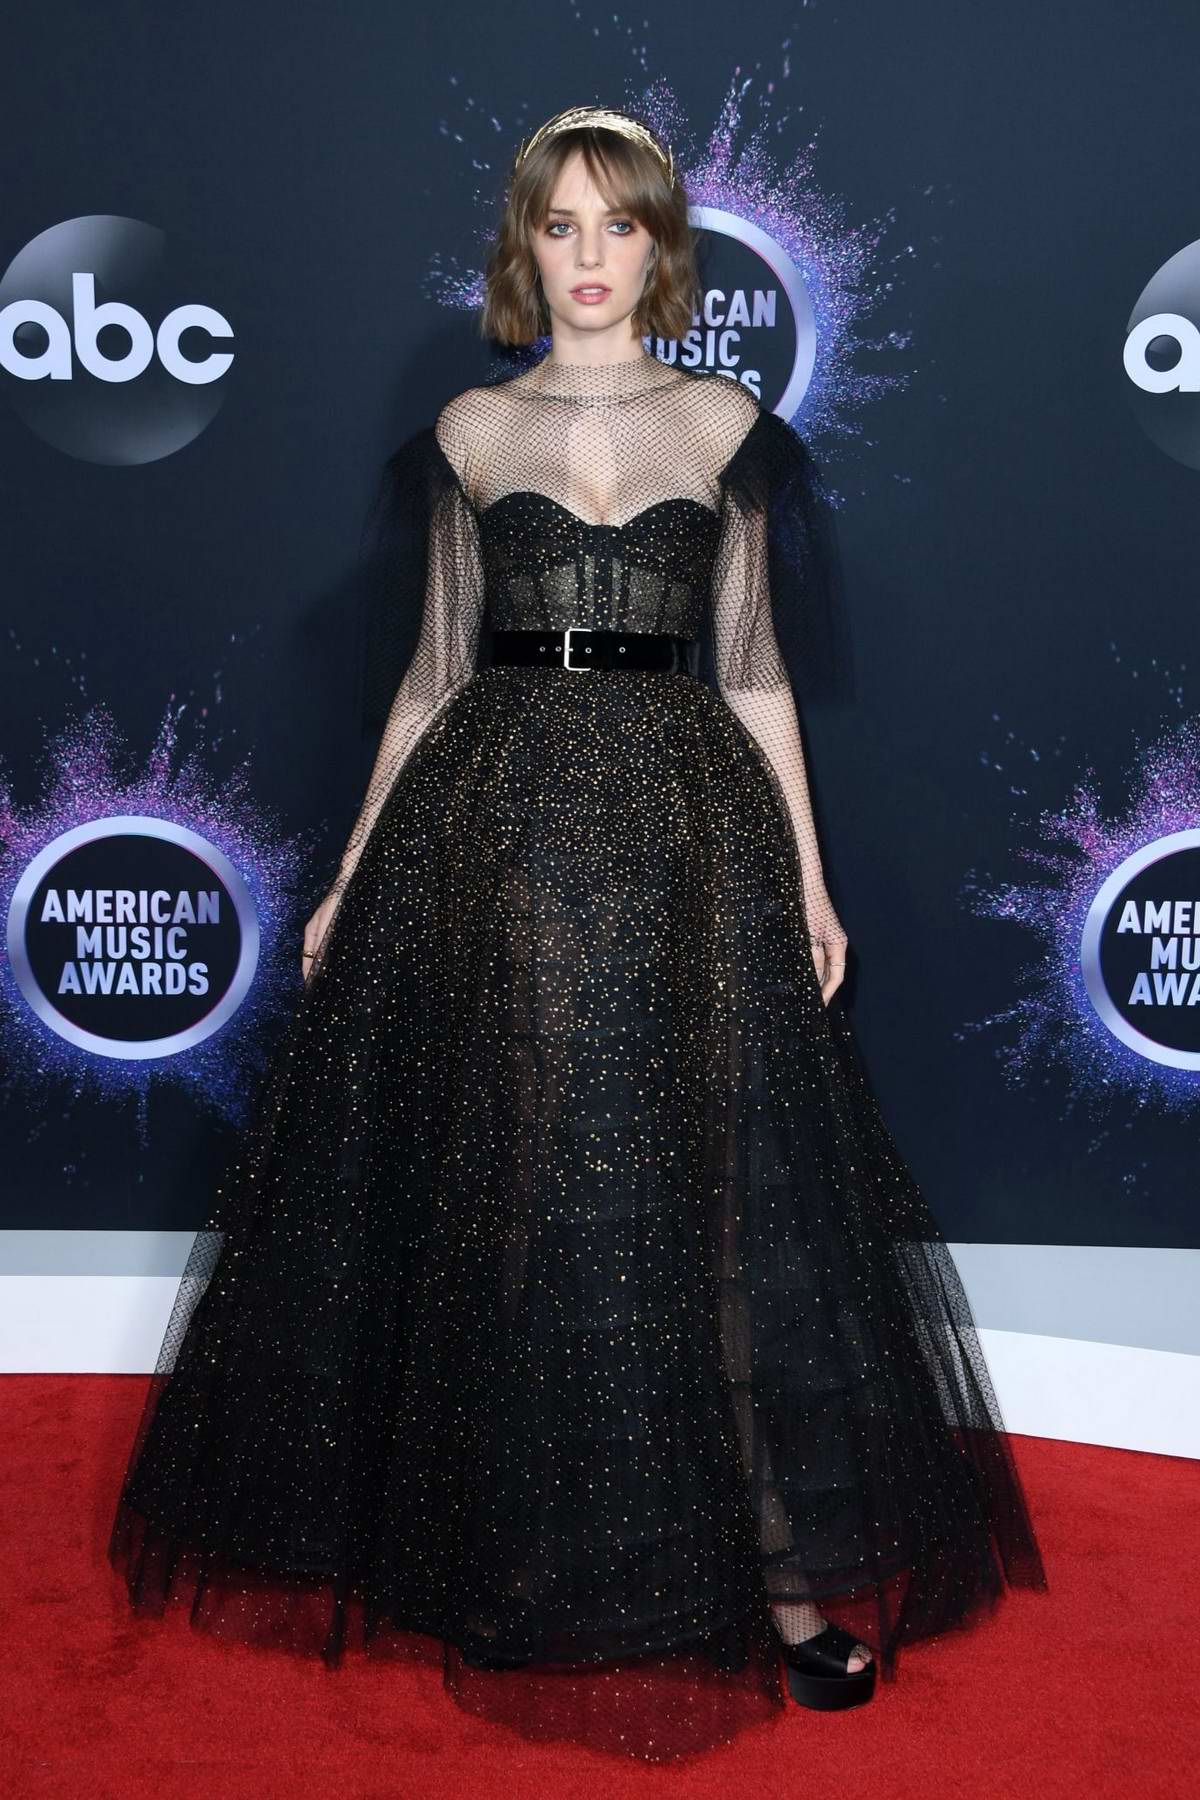 Maya Hawke attends the 2019 American Music Awards at Microsoft Theater in Los Angeles